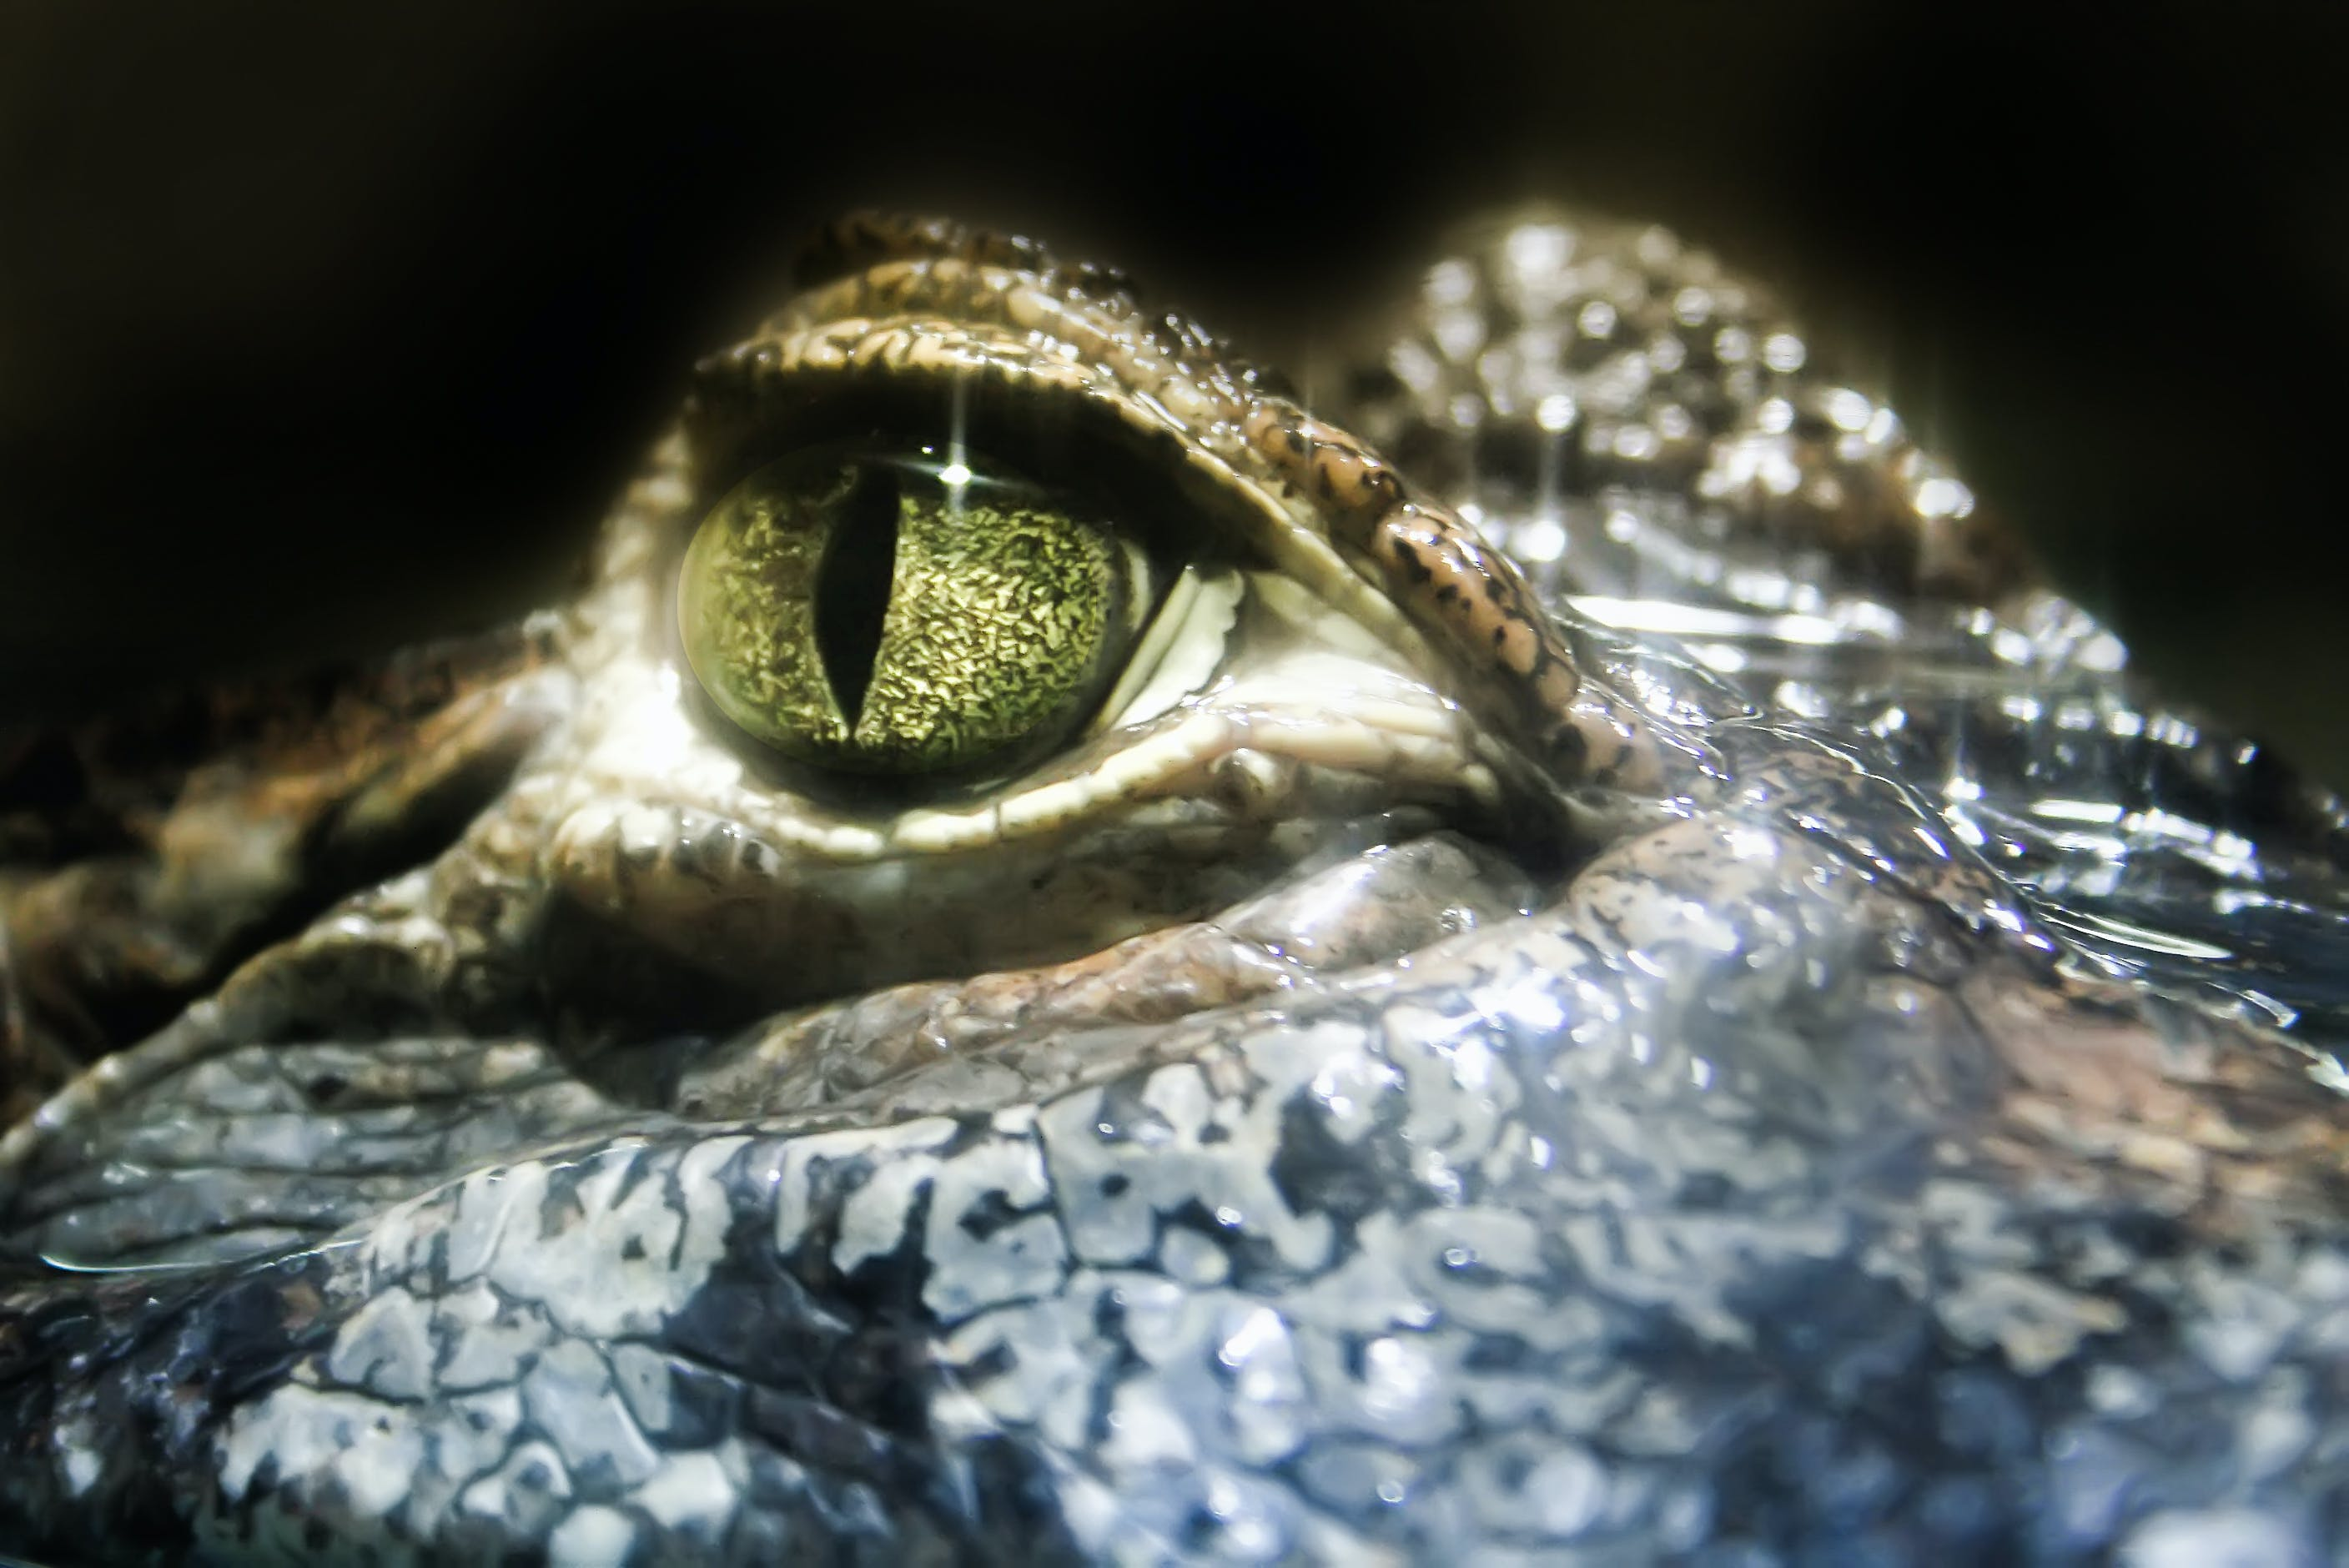 Close-Up Photo of Crocodile Eye